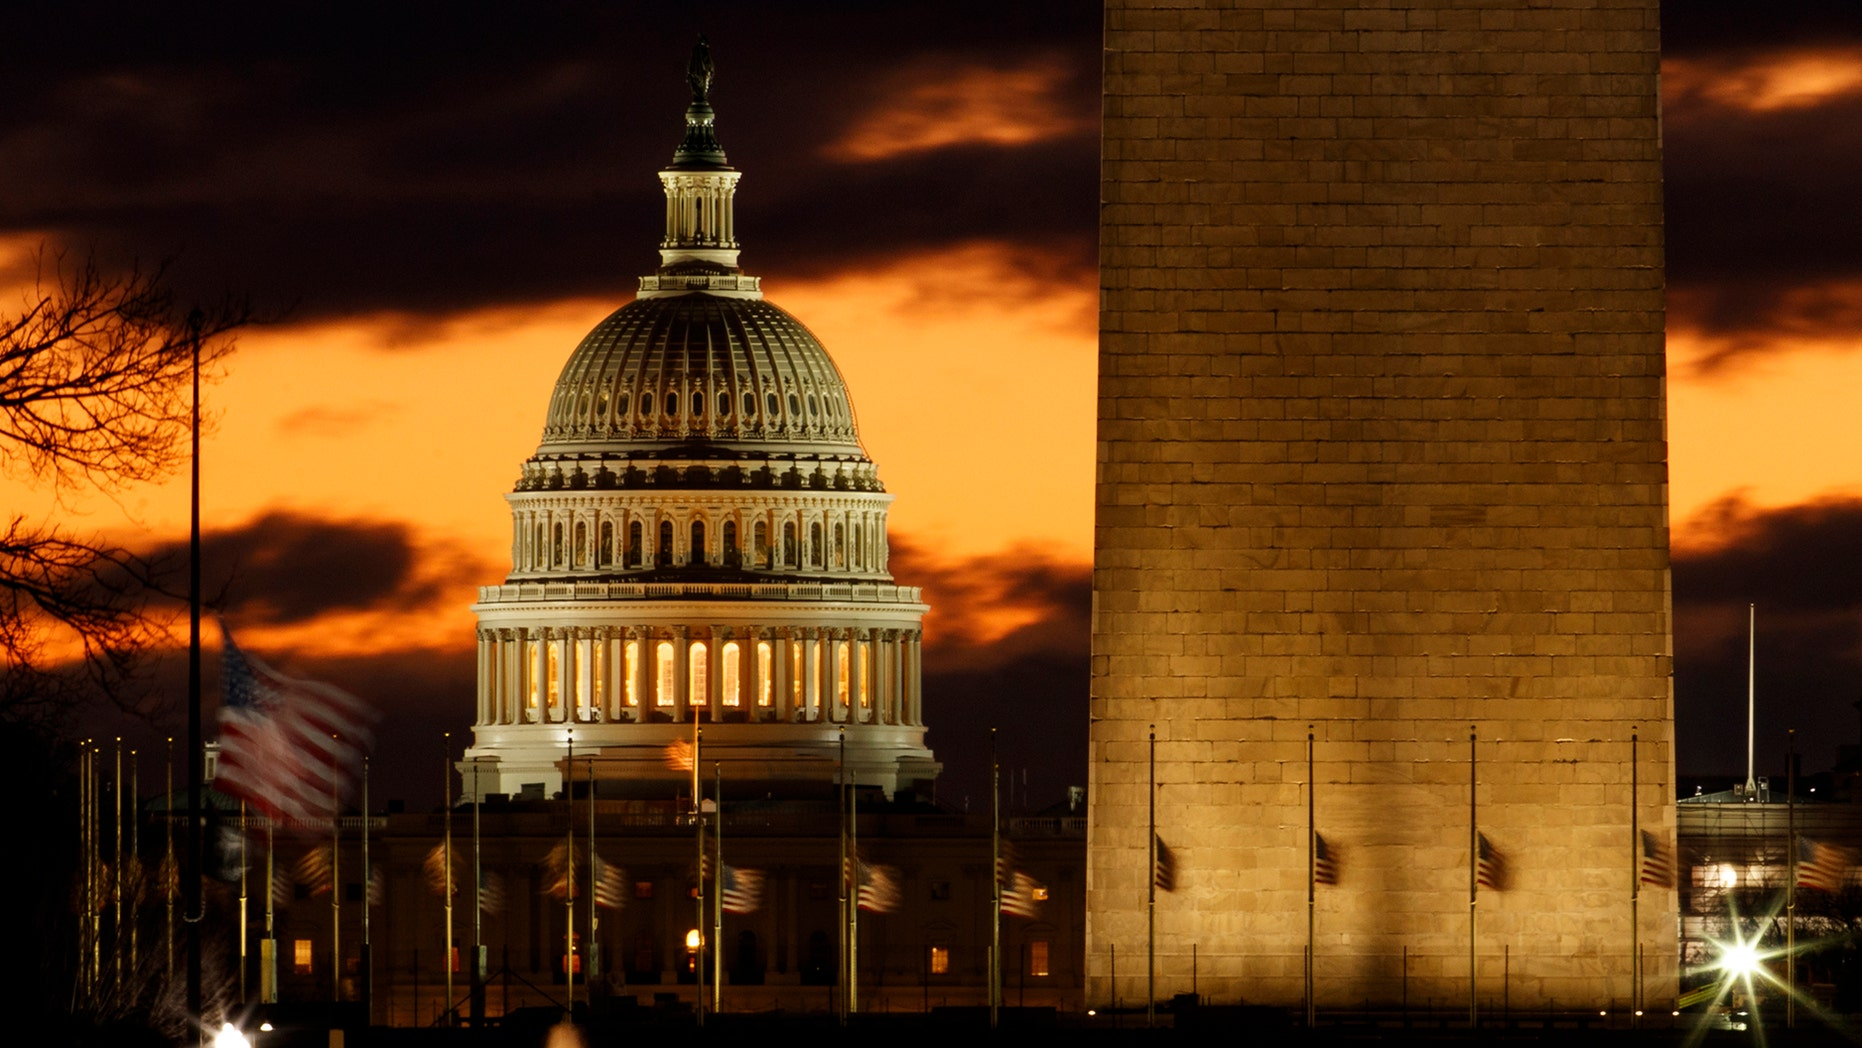 The U.S. Capitol dome is seen past the base of the Washington Monument just before sunrise in Washington, Saturday, Dec. 22, 2018. (AP Photo/Carolyn Kaster)